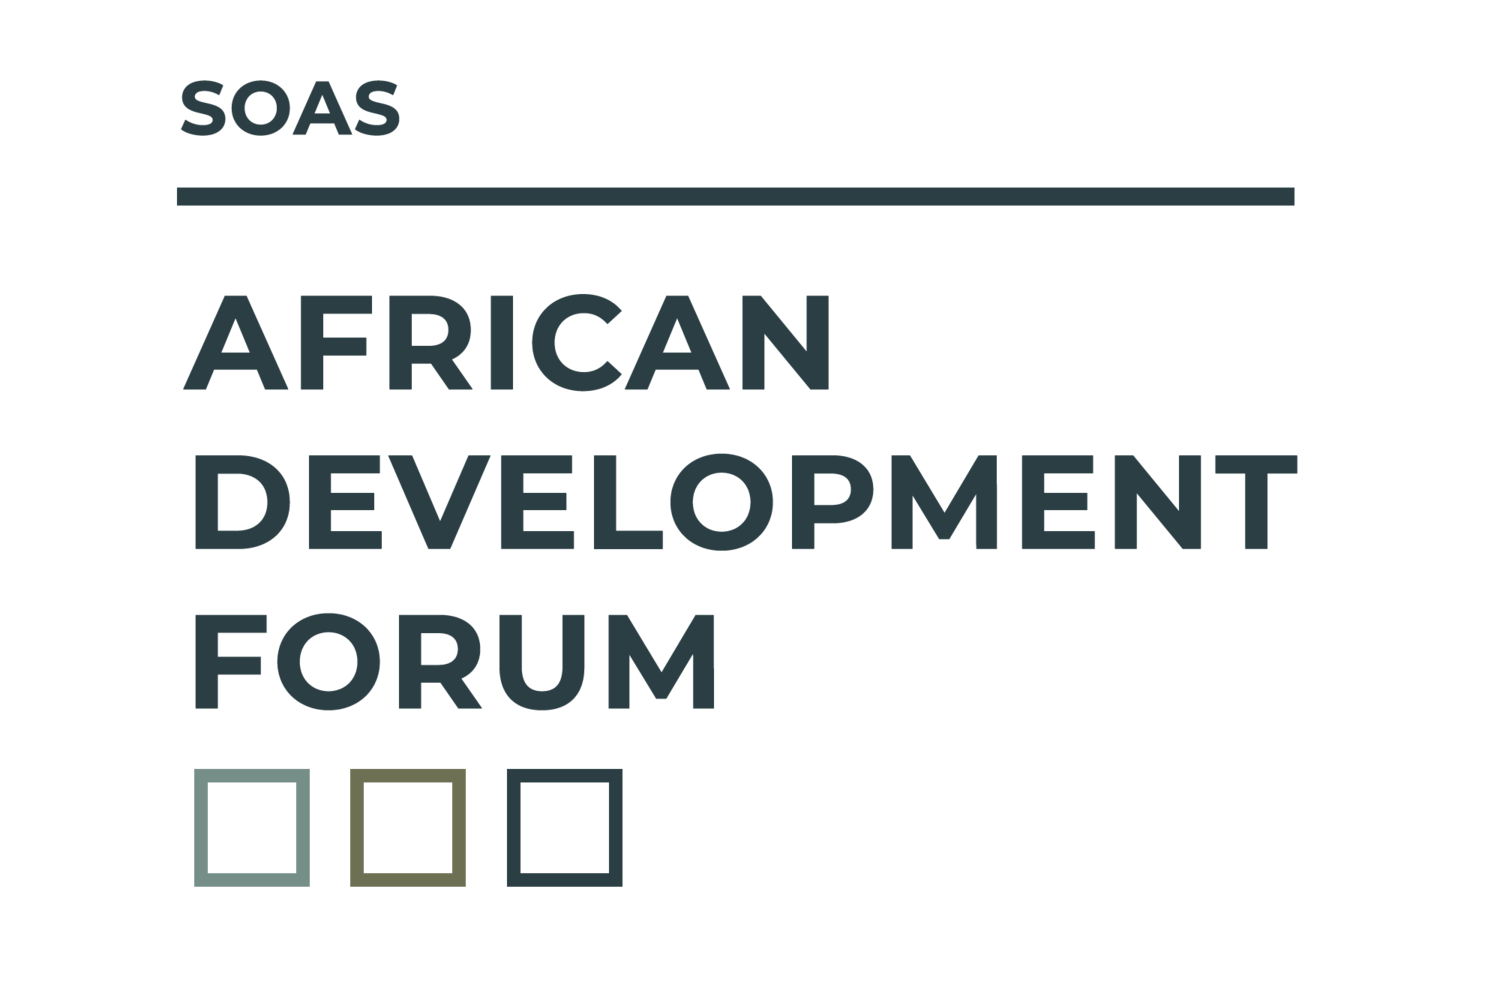 SOAS African Development Forum